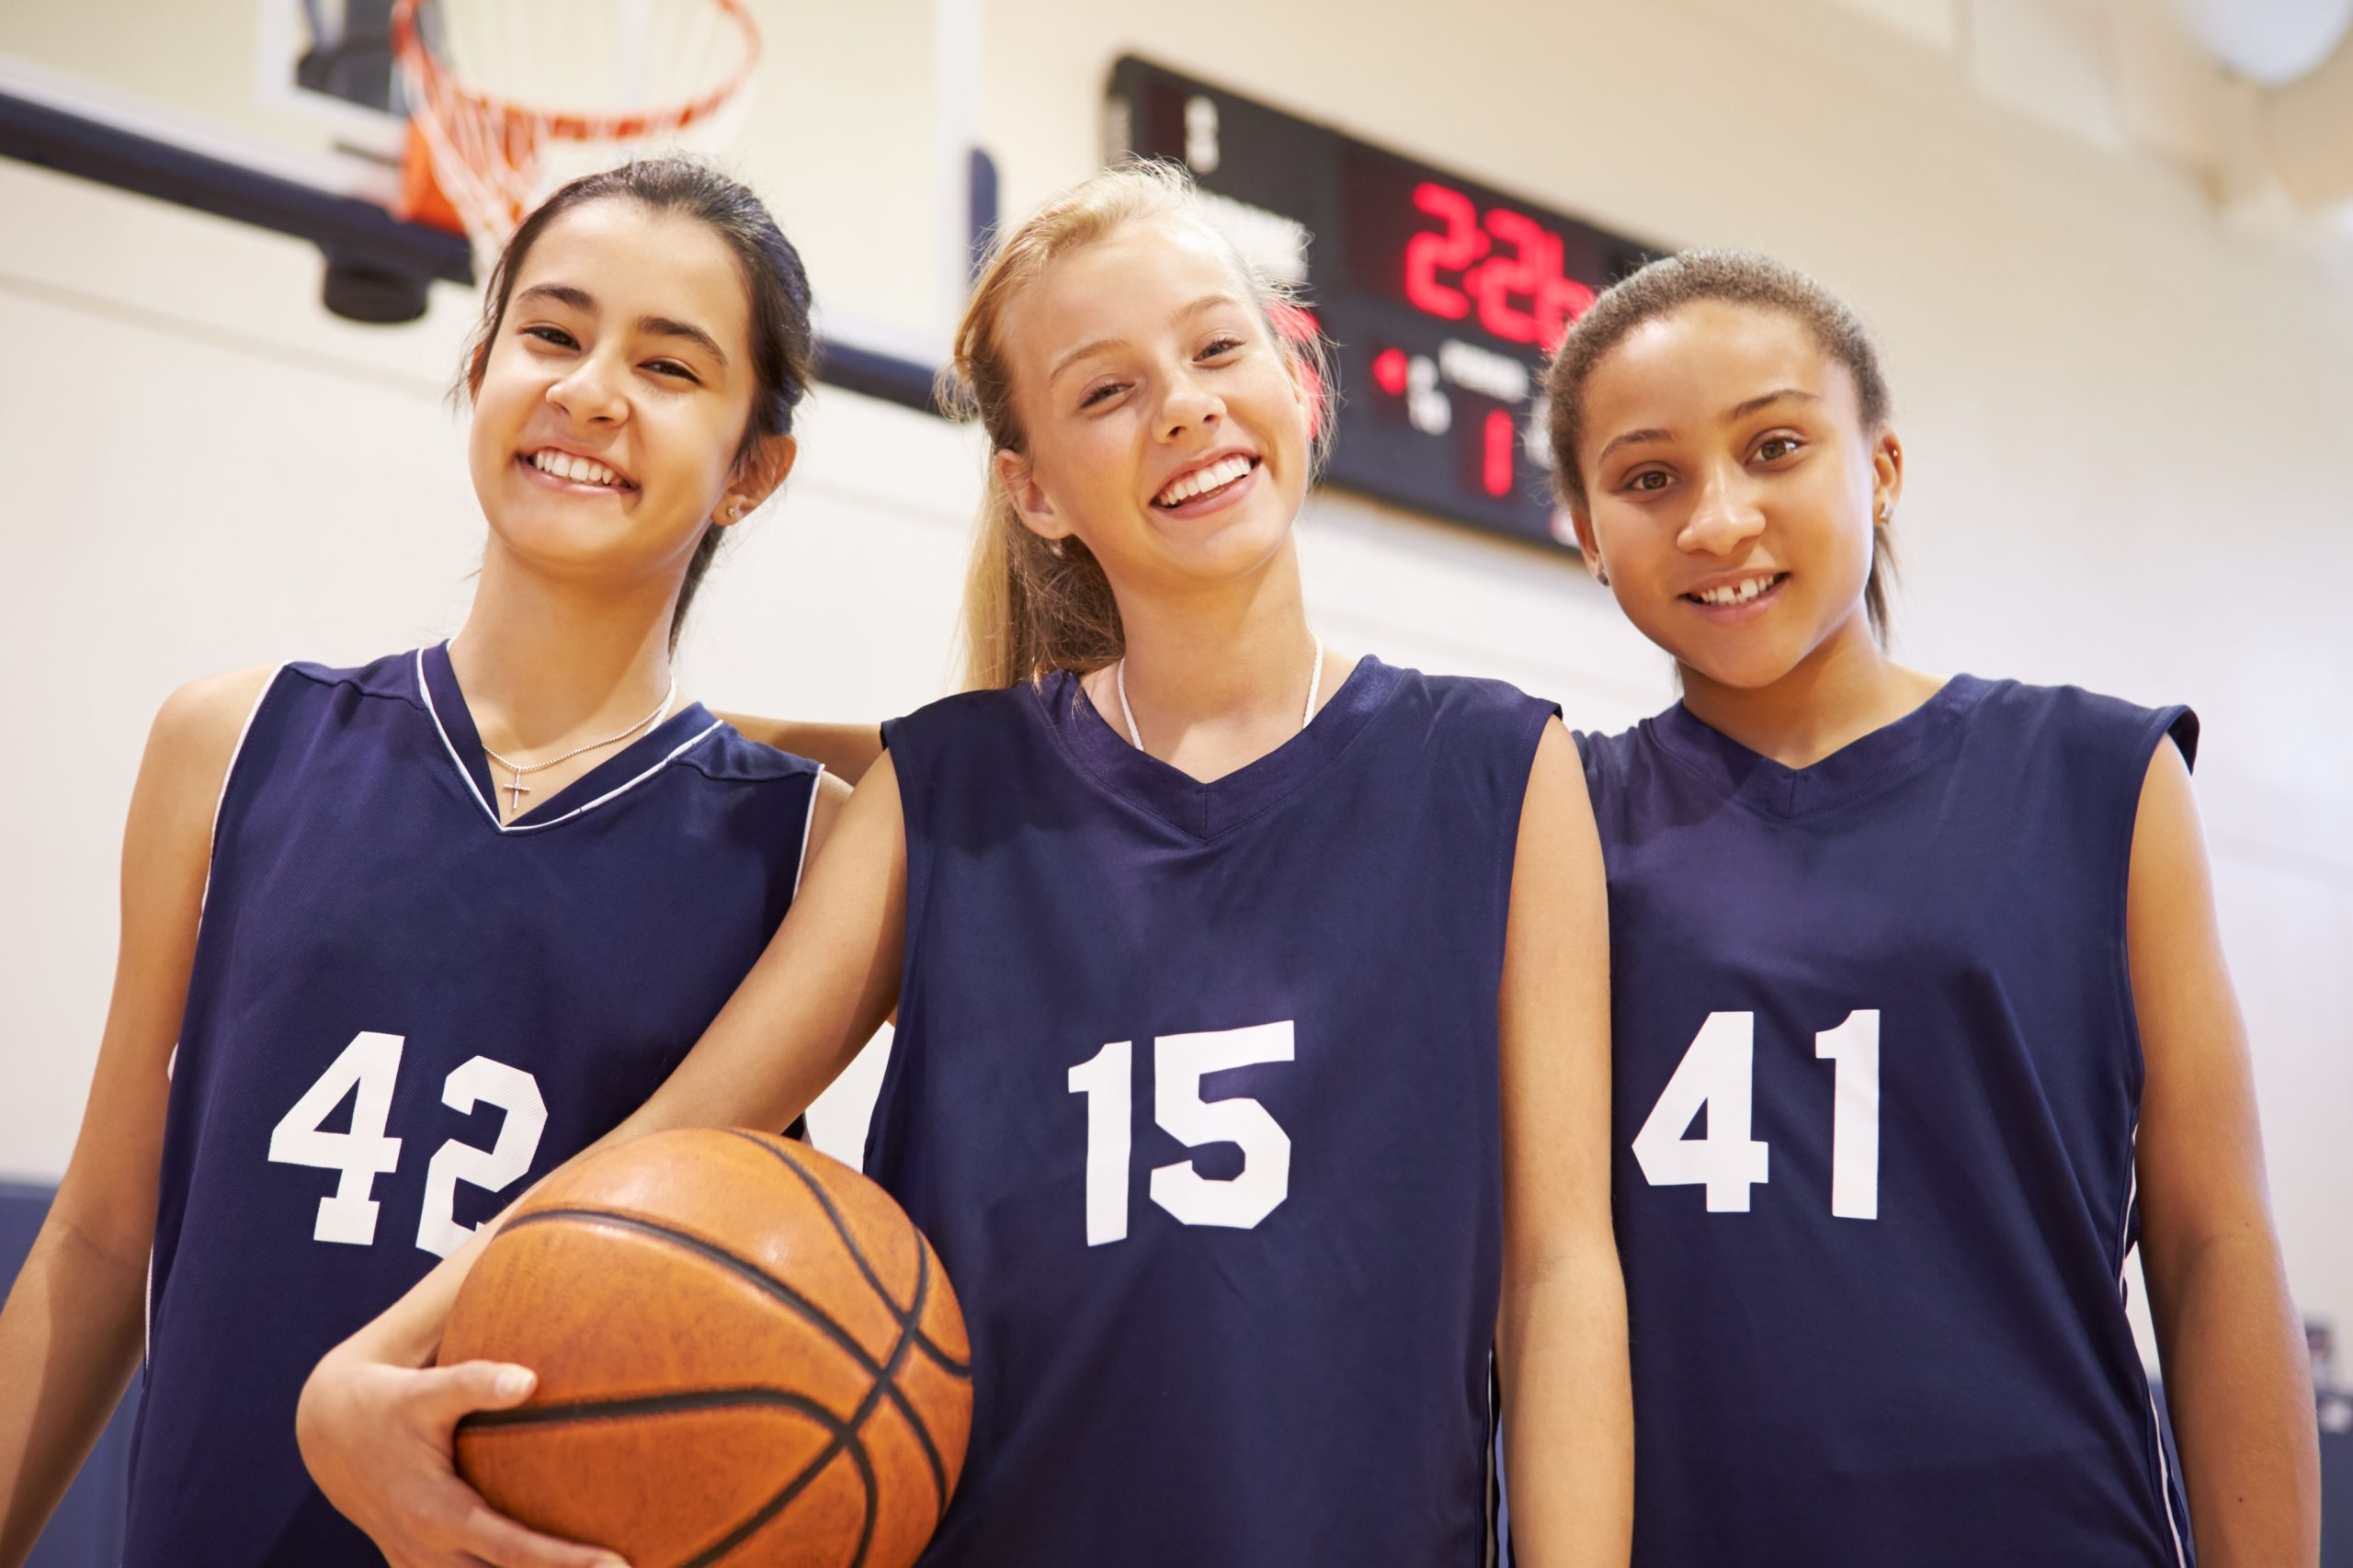 sports physical teens and kids